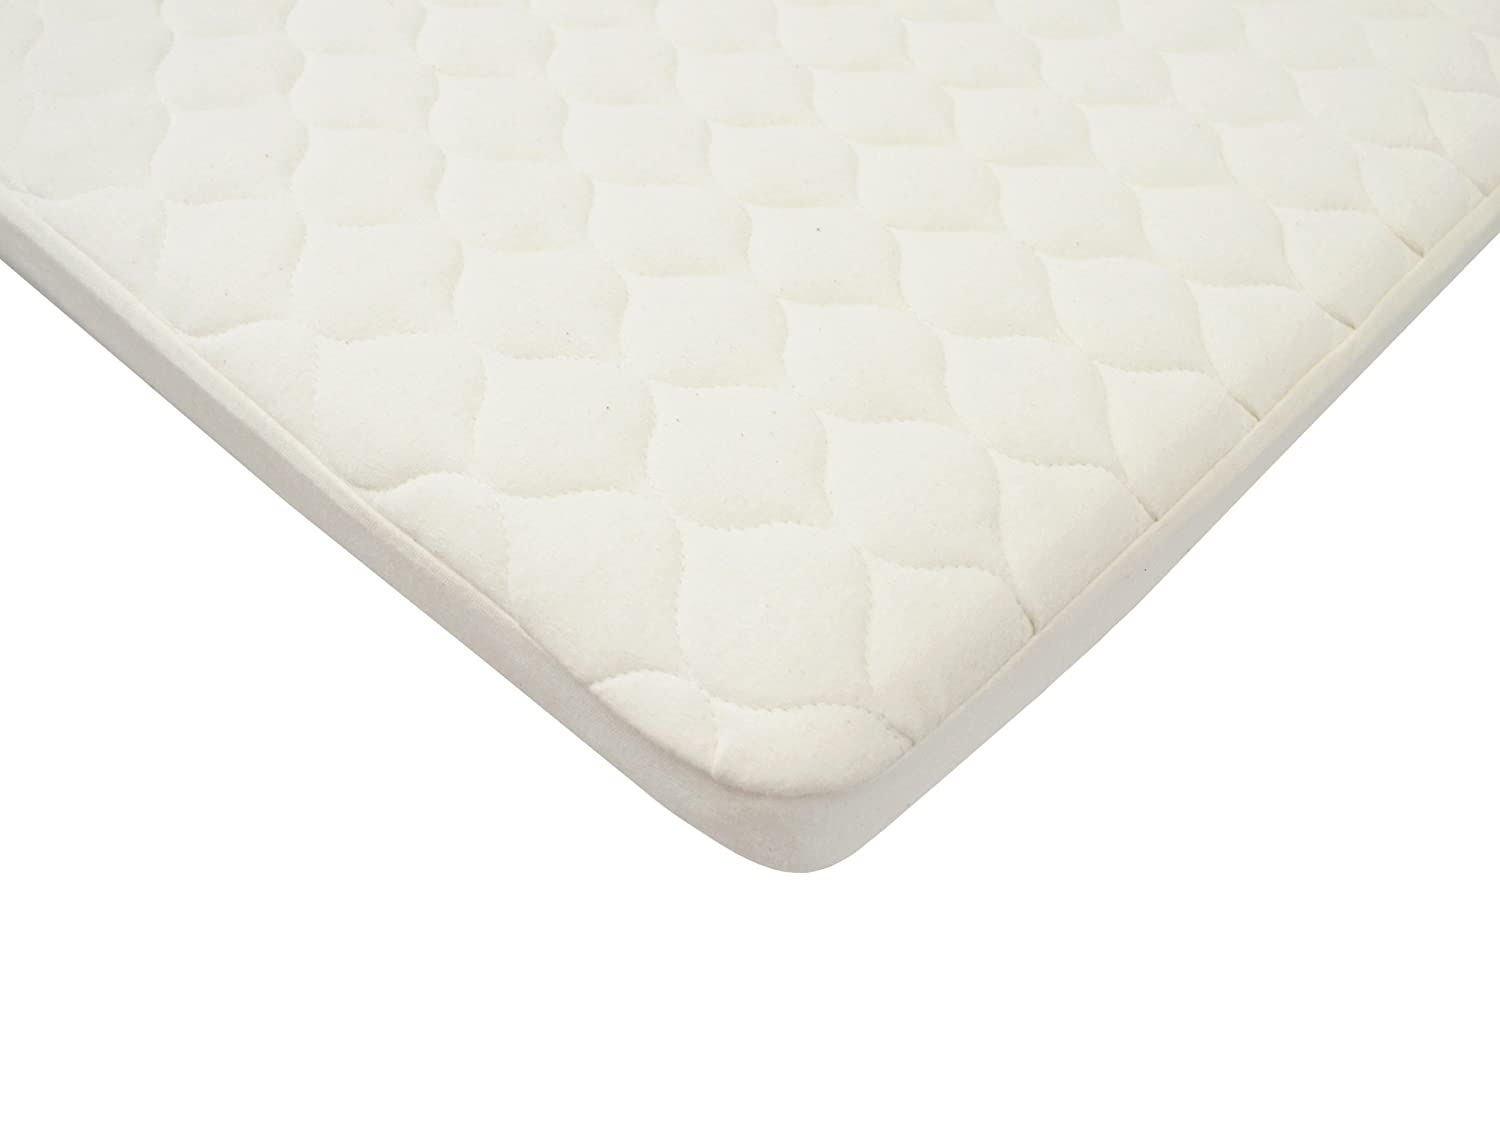 American Baby Company Waterproof Quilted Crib Size Fitted 2 Pack Mattress Cover Made with Organic Cotton, Natural - Vinyl Free 282763-NA